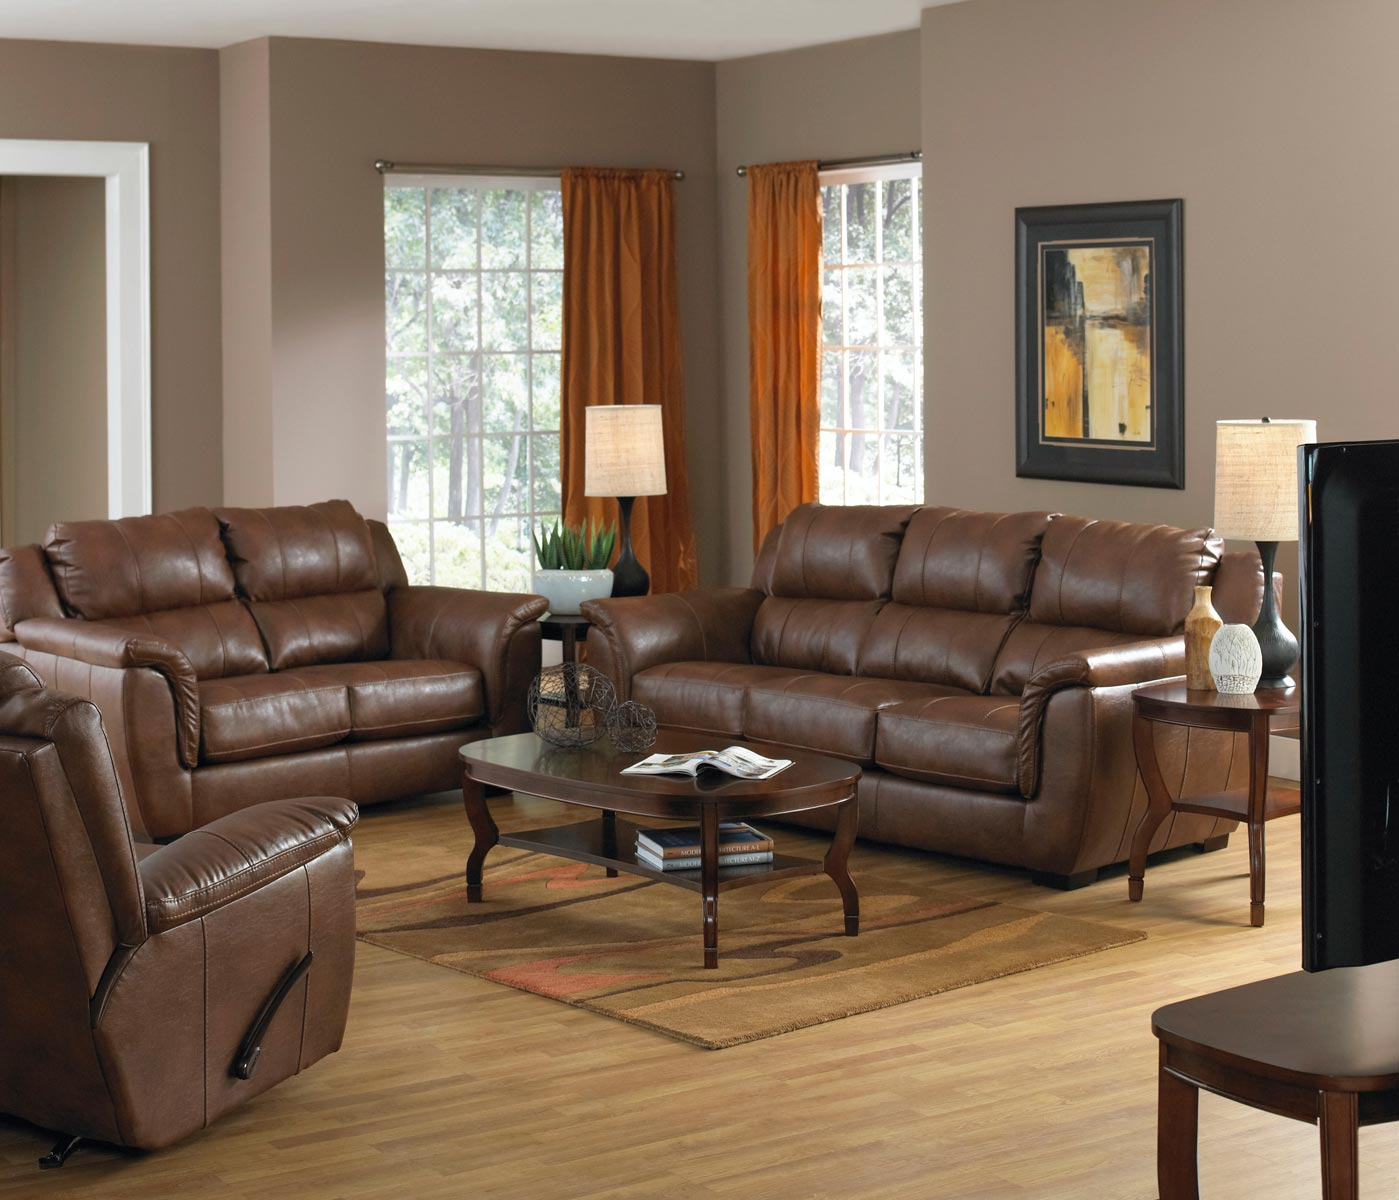 Amazing Jackson Verona Leather Sofa Set Chestnut Furniture Product Photo